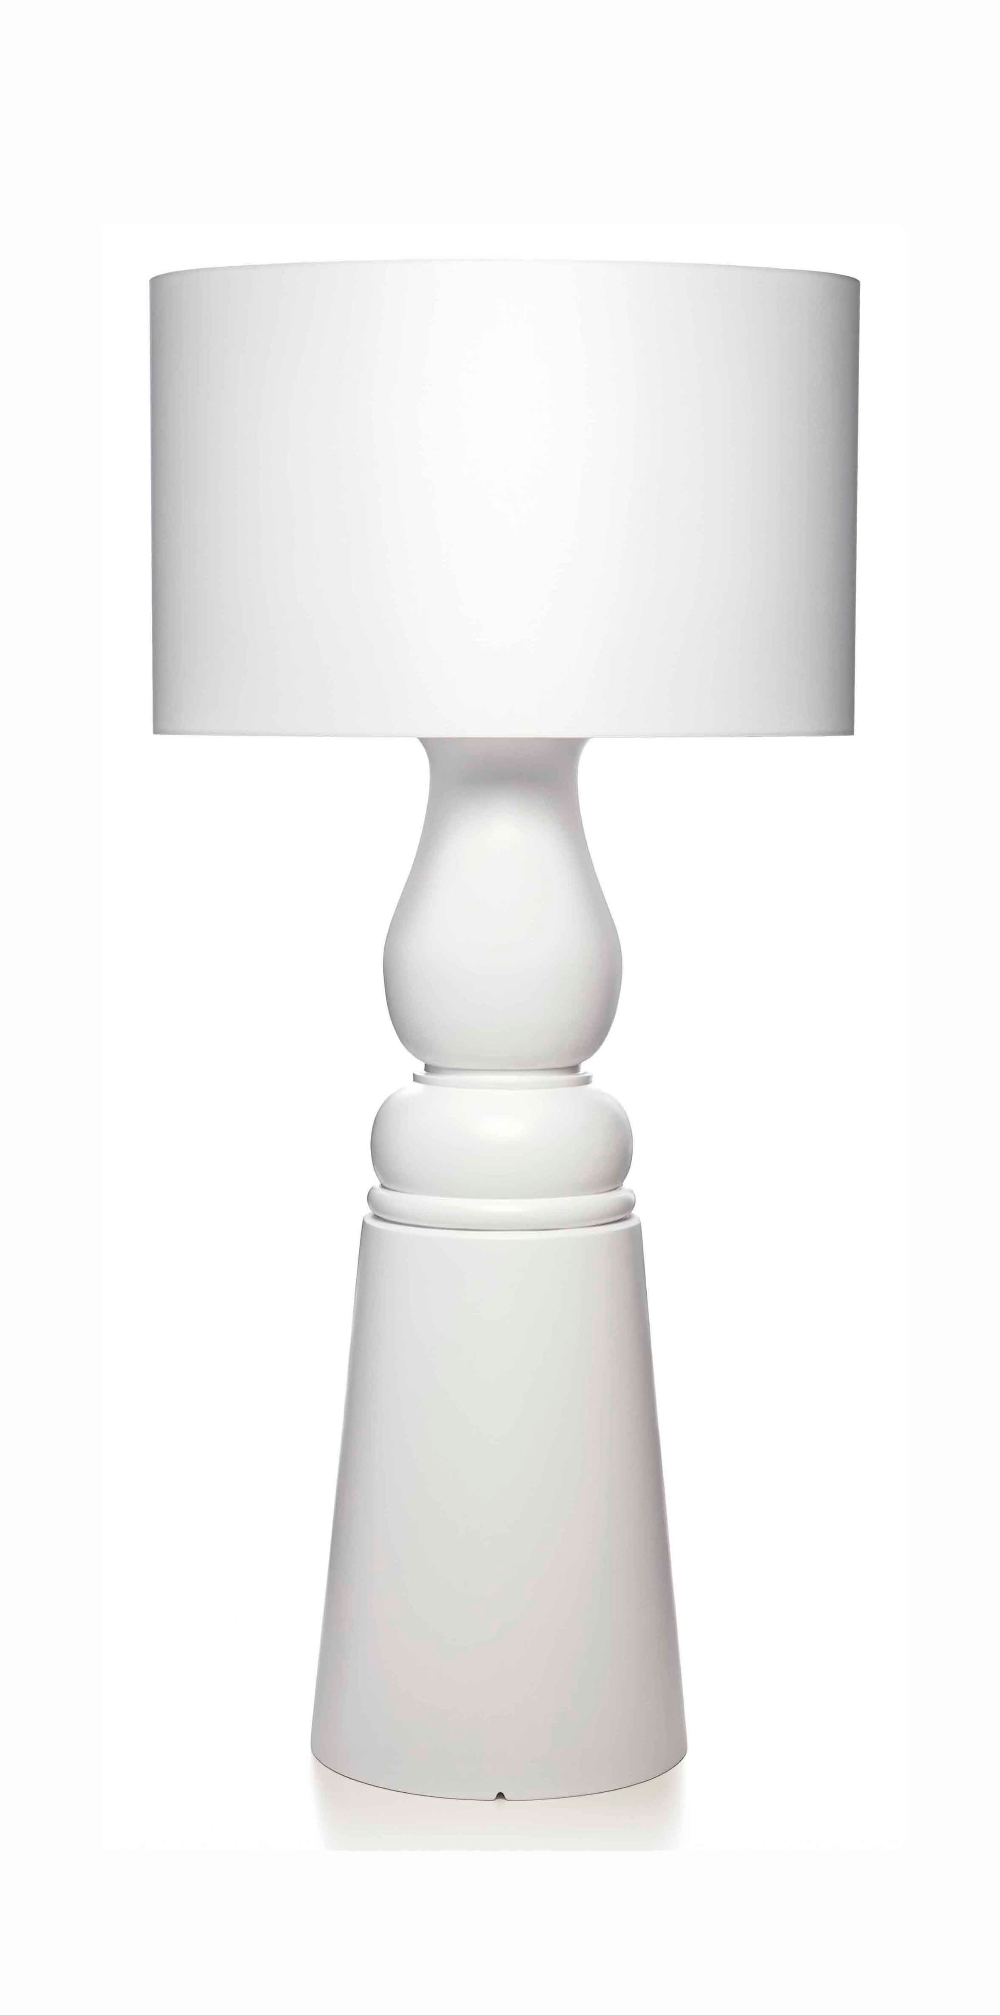 Farooo Small Floor Lamp By Moooi In Floor Lighting Floor Lamp